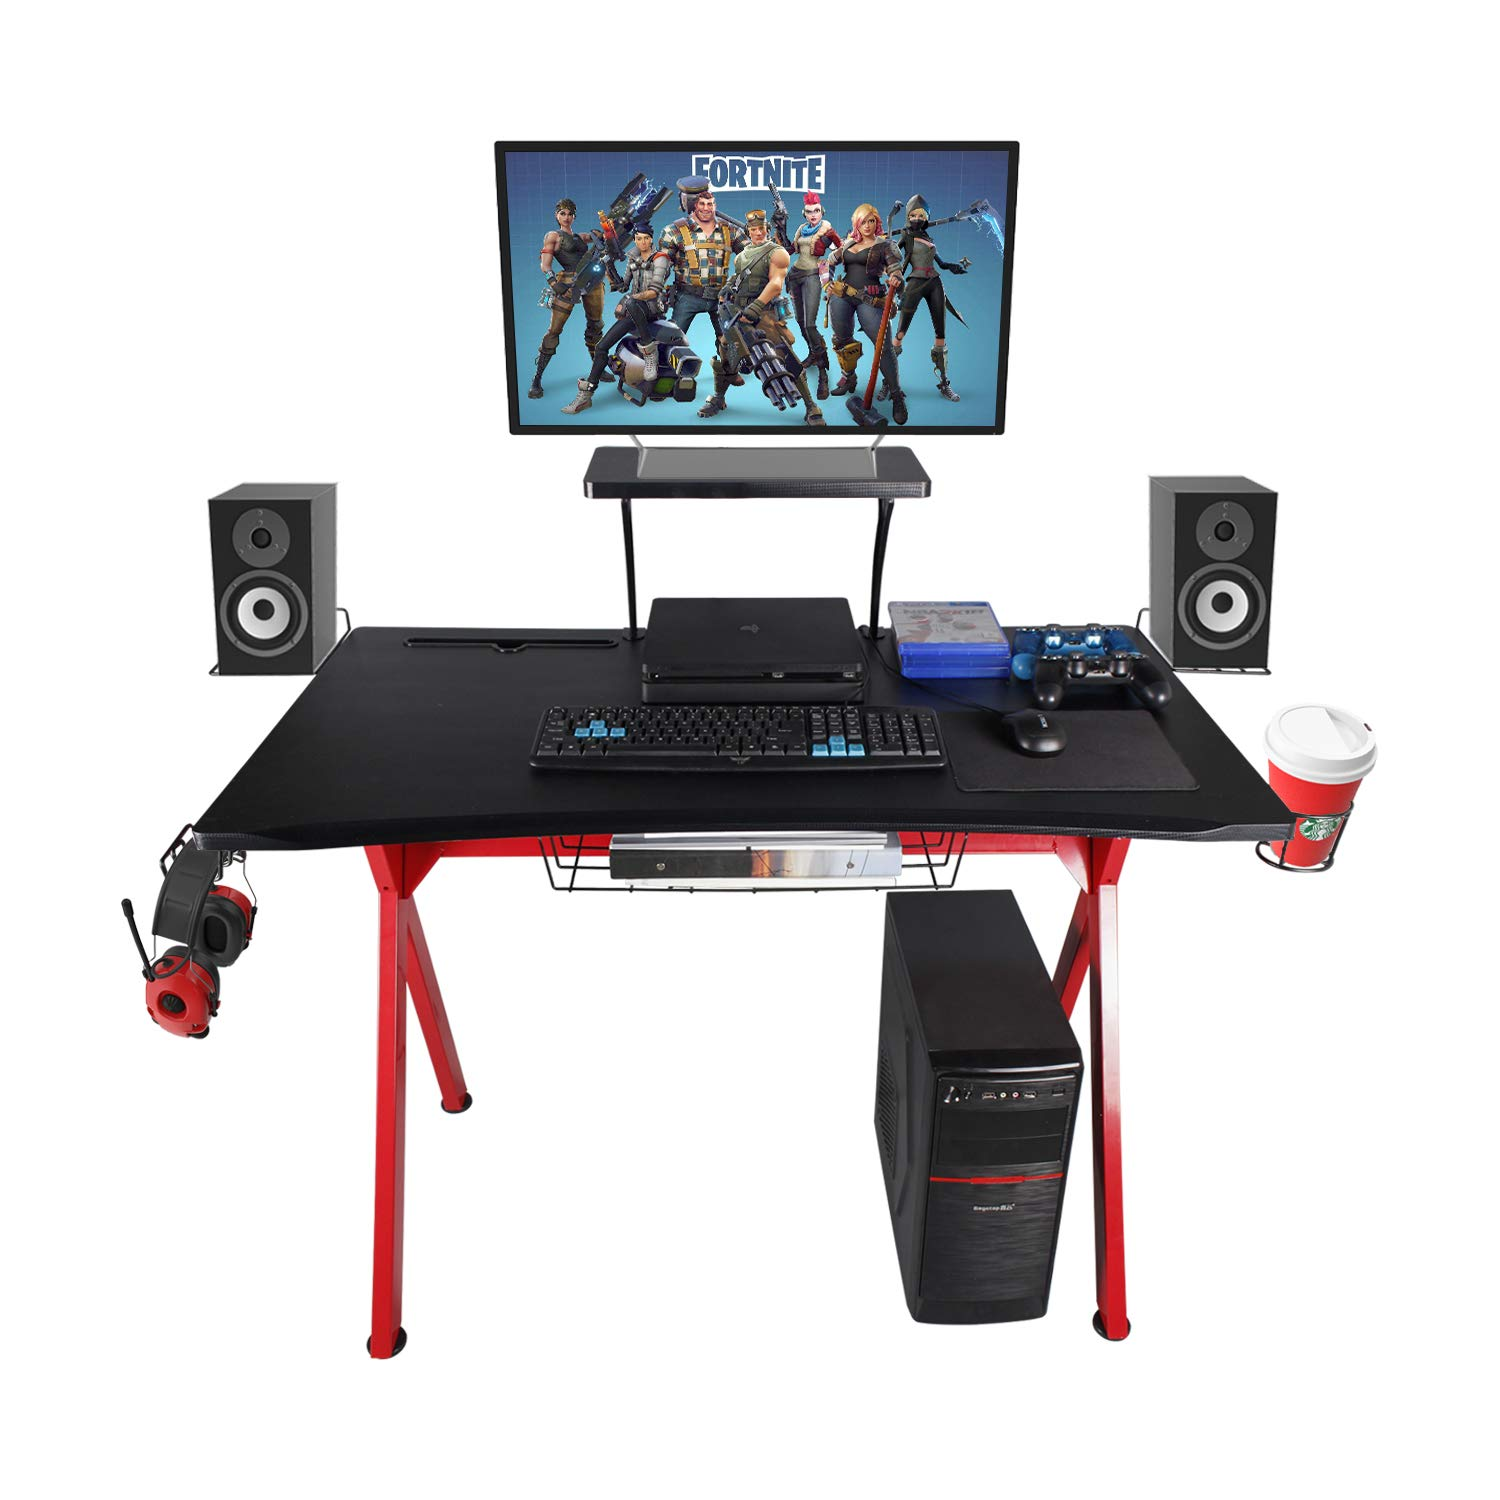 LAZZO Gaming Desk 41'' Gaming Table Home Computer Desk with Display Support Plate, Cup Holder and Headphone Hook,Gamer Workstation Game Table, Curved Front Desktop,Red & Black Design(41'' Wx23.5 D)